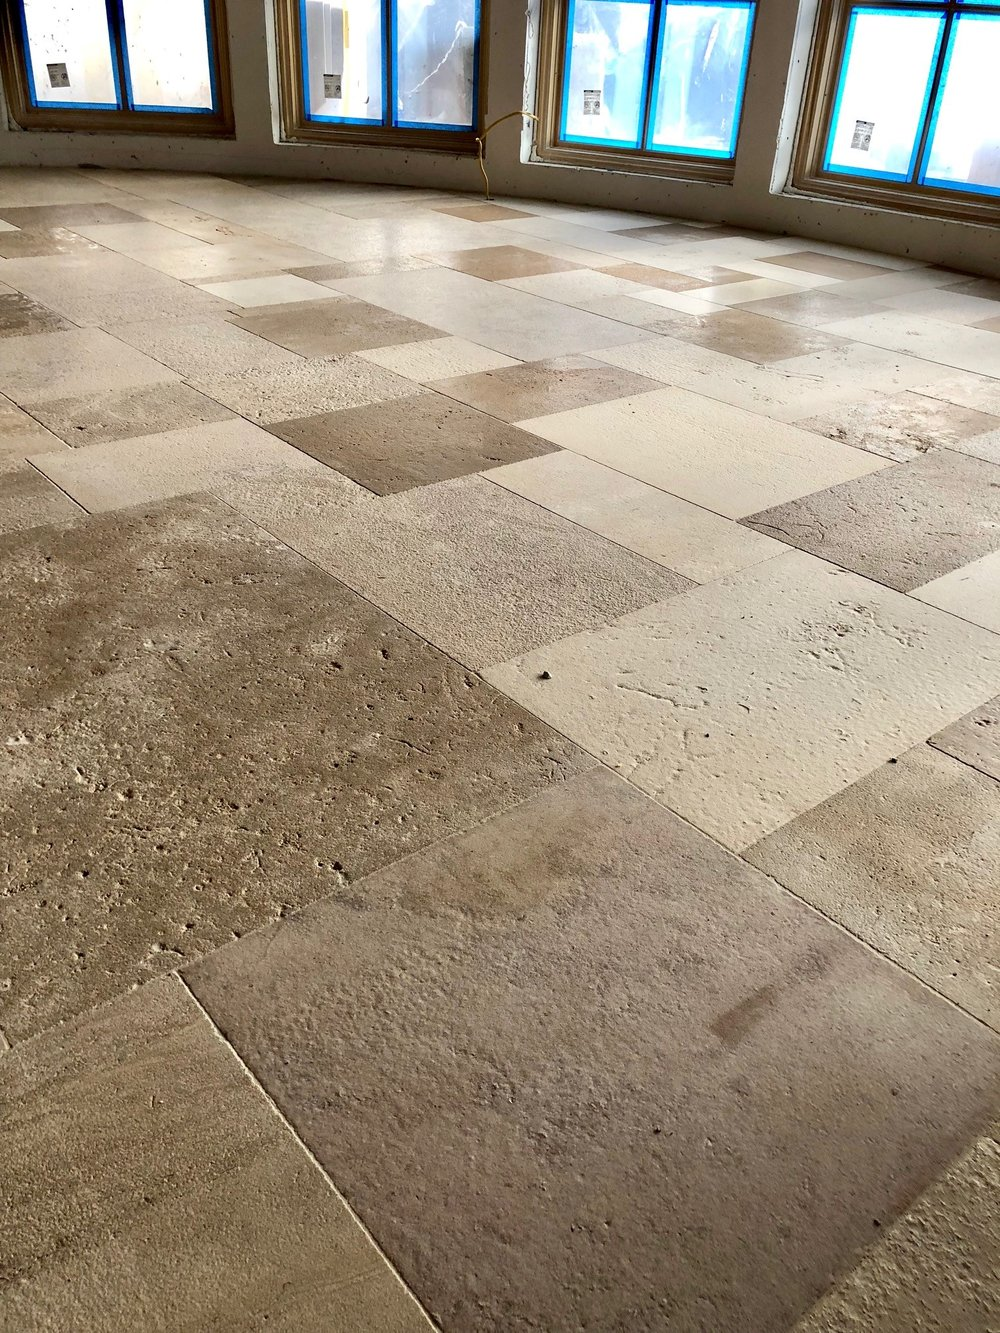 An up close and personal look and the antique limestone. Check out the various colors and textures! The fun thing about this floor is that the pattern was not predetermined—it was laid at random according to how each individual piece fit. We love how it turned out!